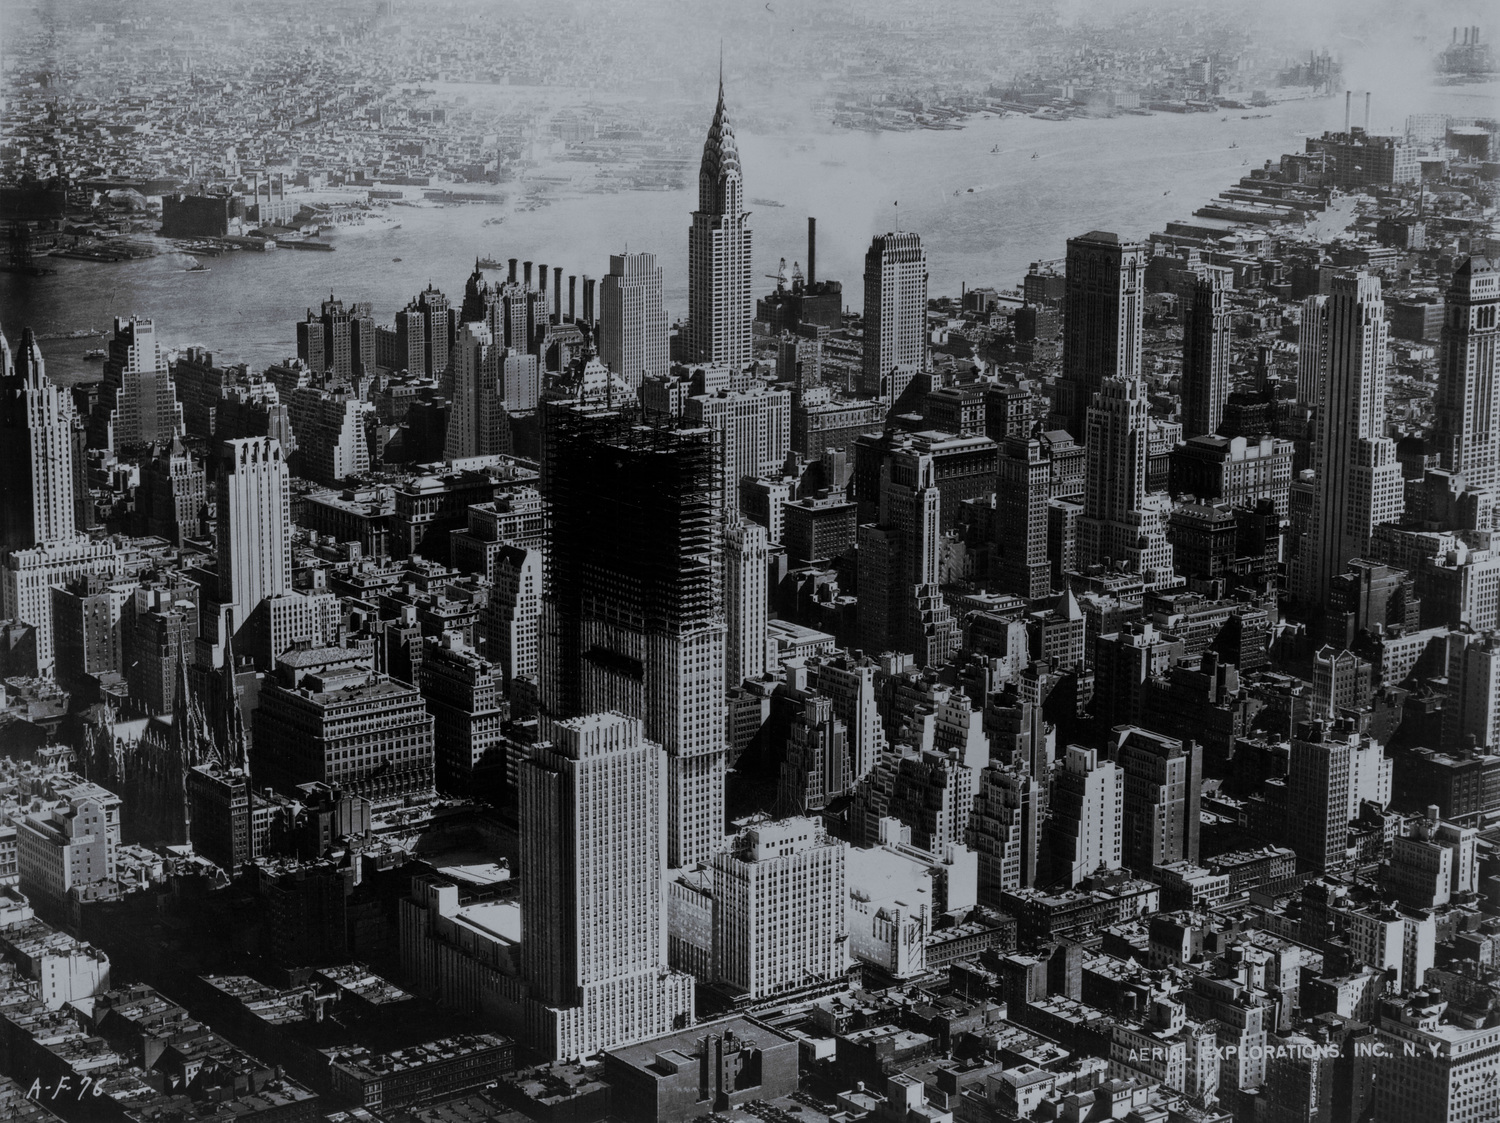 "Rockefeller Center under construction, New York City, 1932 | Rockefeller Center rises in mid-Manhattan. Photograph by Hamilton M. Wright for Aerial Explorations, Inc., N.Y., 1932.  From the New York World-Telegram Collection at the <a href=""http://memory.loc.gov/ammem/index.html"" rel=""nofollow"">U.S. Library of Congress</a>. <a href=""http://flickr.com/search/?q=world-telegram&m=tags&w=76204898@N00&s=int"">More pictures from the World-Telegram Collection</a> <b>[PD]</b> <a href=""http://hdl.loc.gov/loc.pnp/cph.3c36071"" rel=""nofollow"">This picture</a> is assumed to be in the public domain."